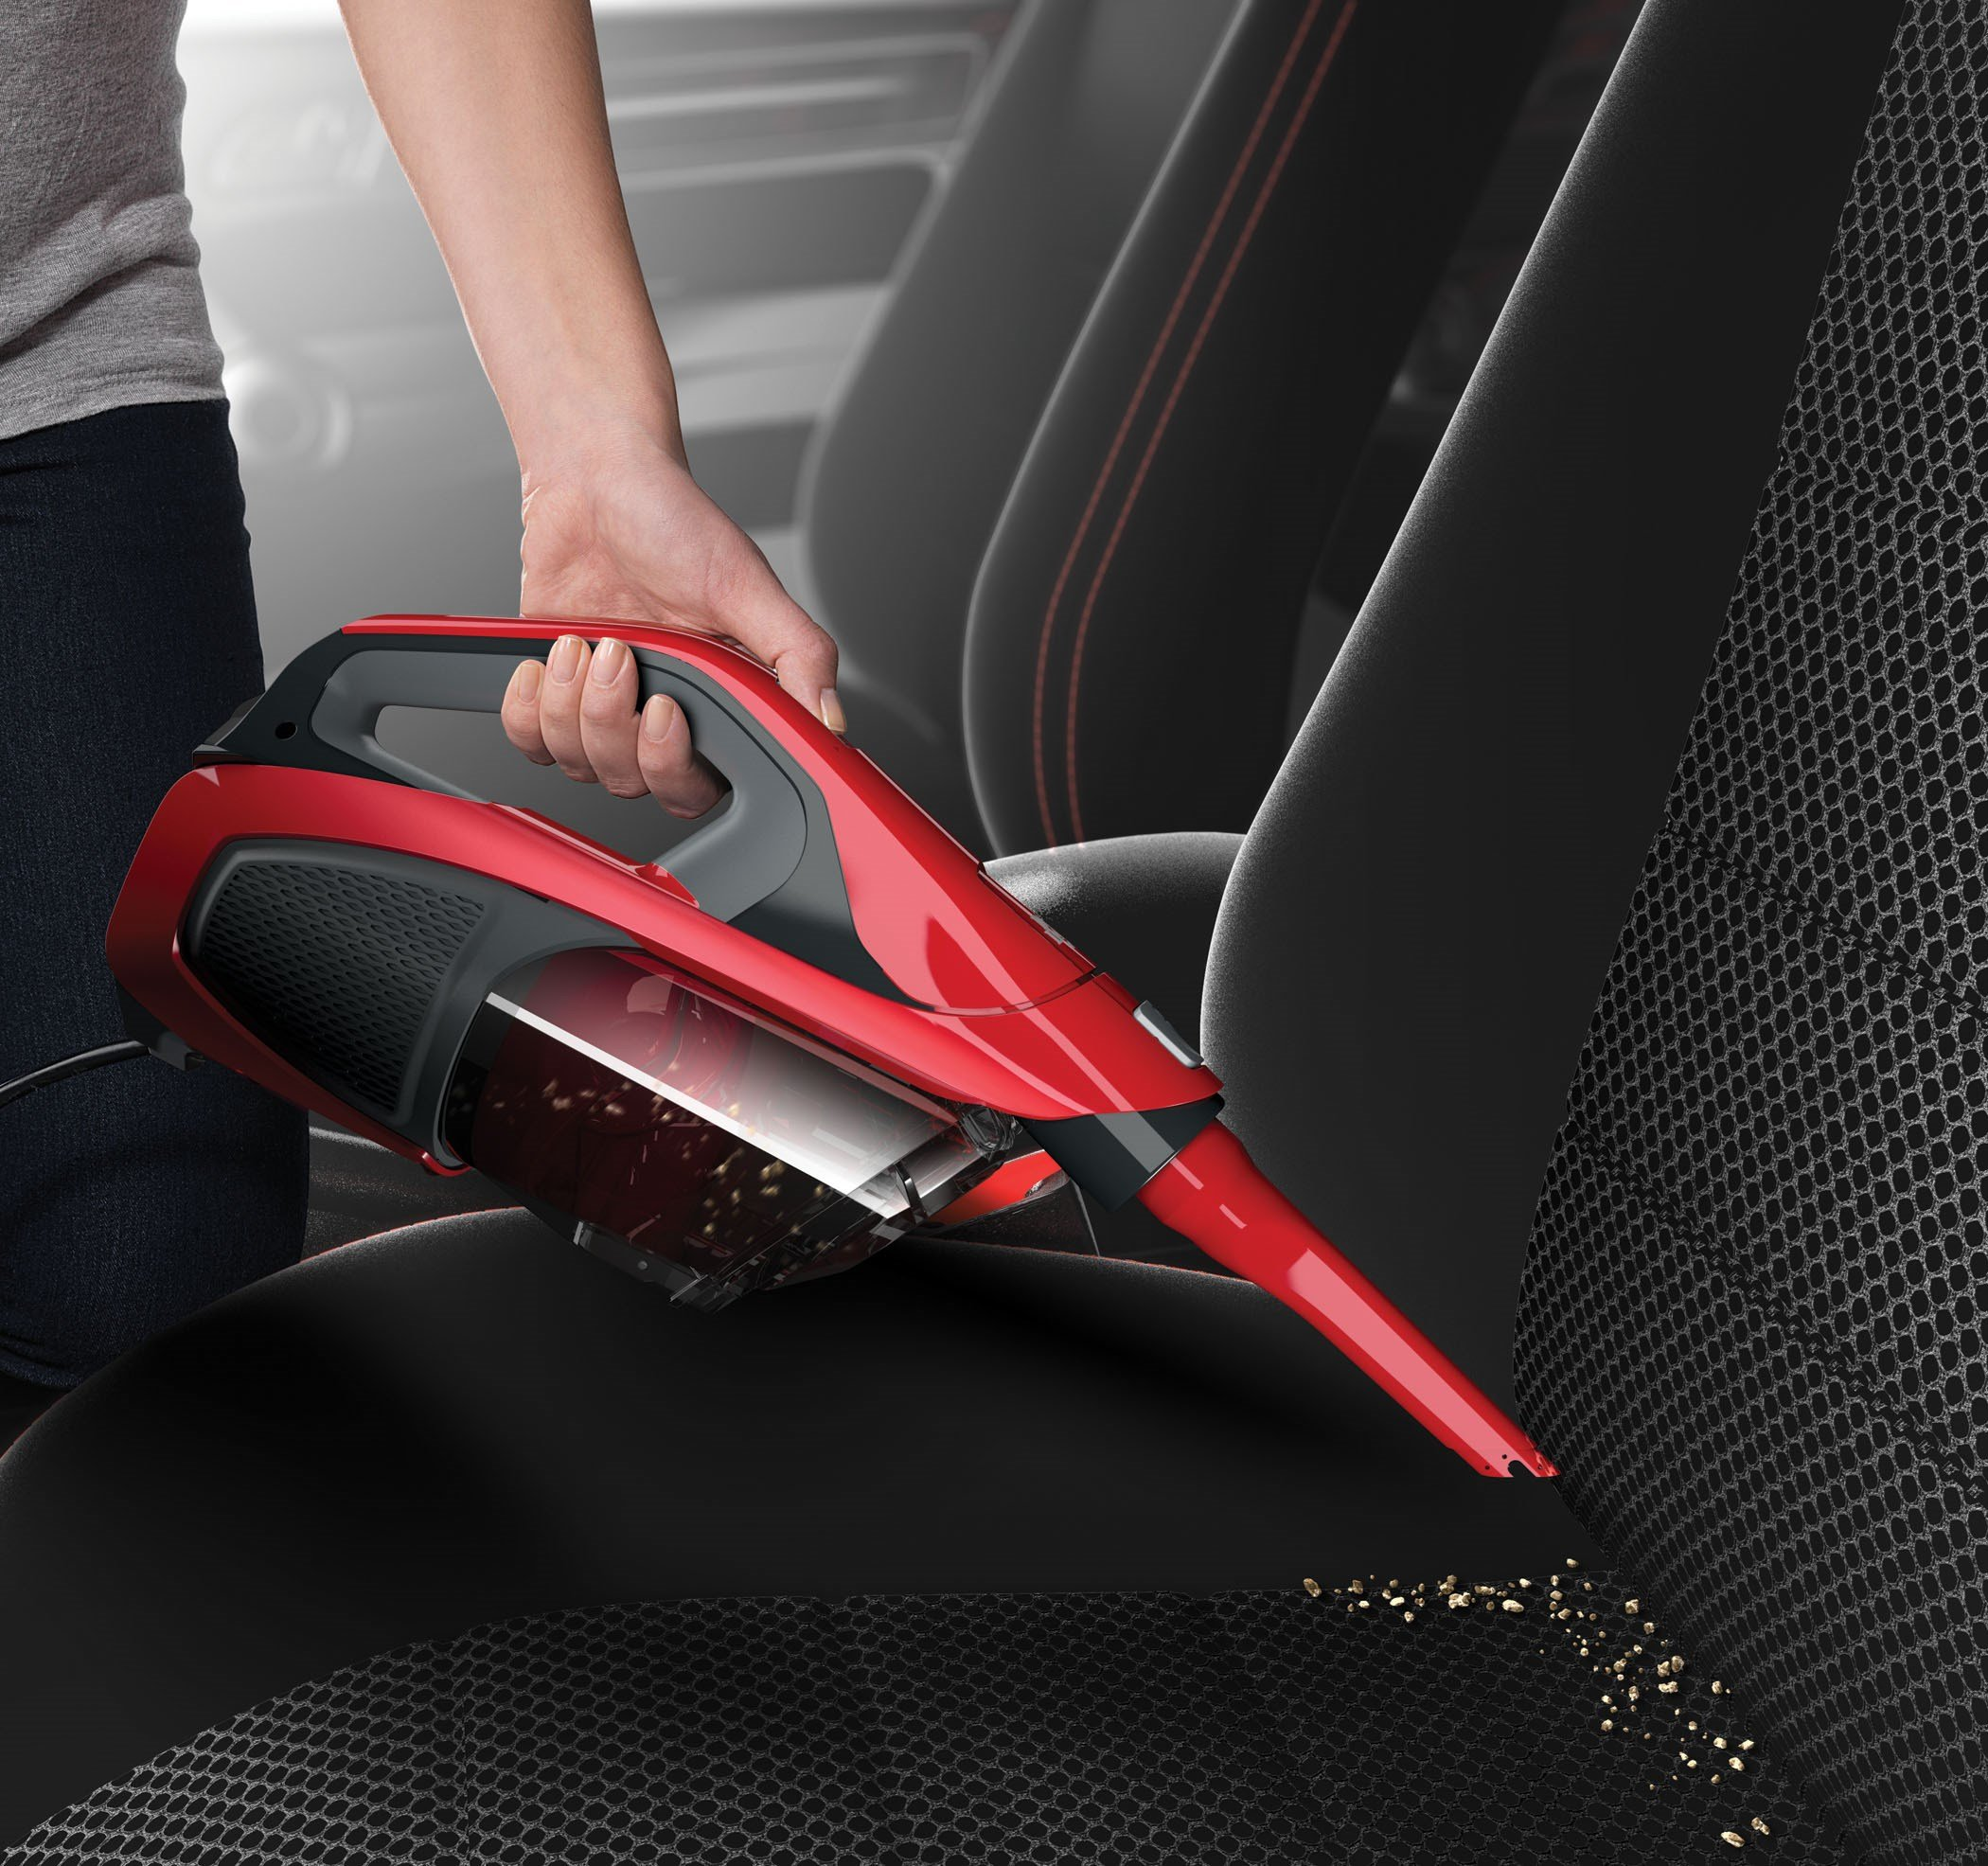 Dirt Devil Vacuum Cleaner 360 Reach Pro Corded Bagless Stick and Handheld Vacuum SD12515B by Dirt Devil (Image #13)